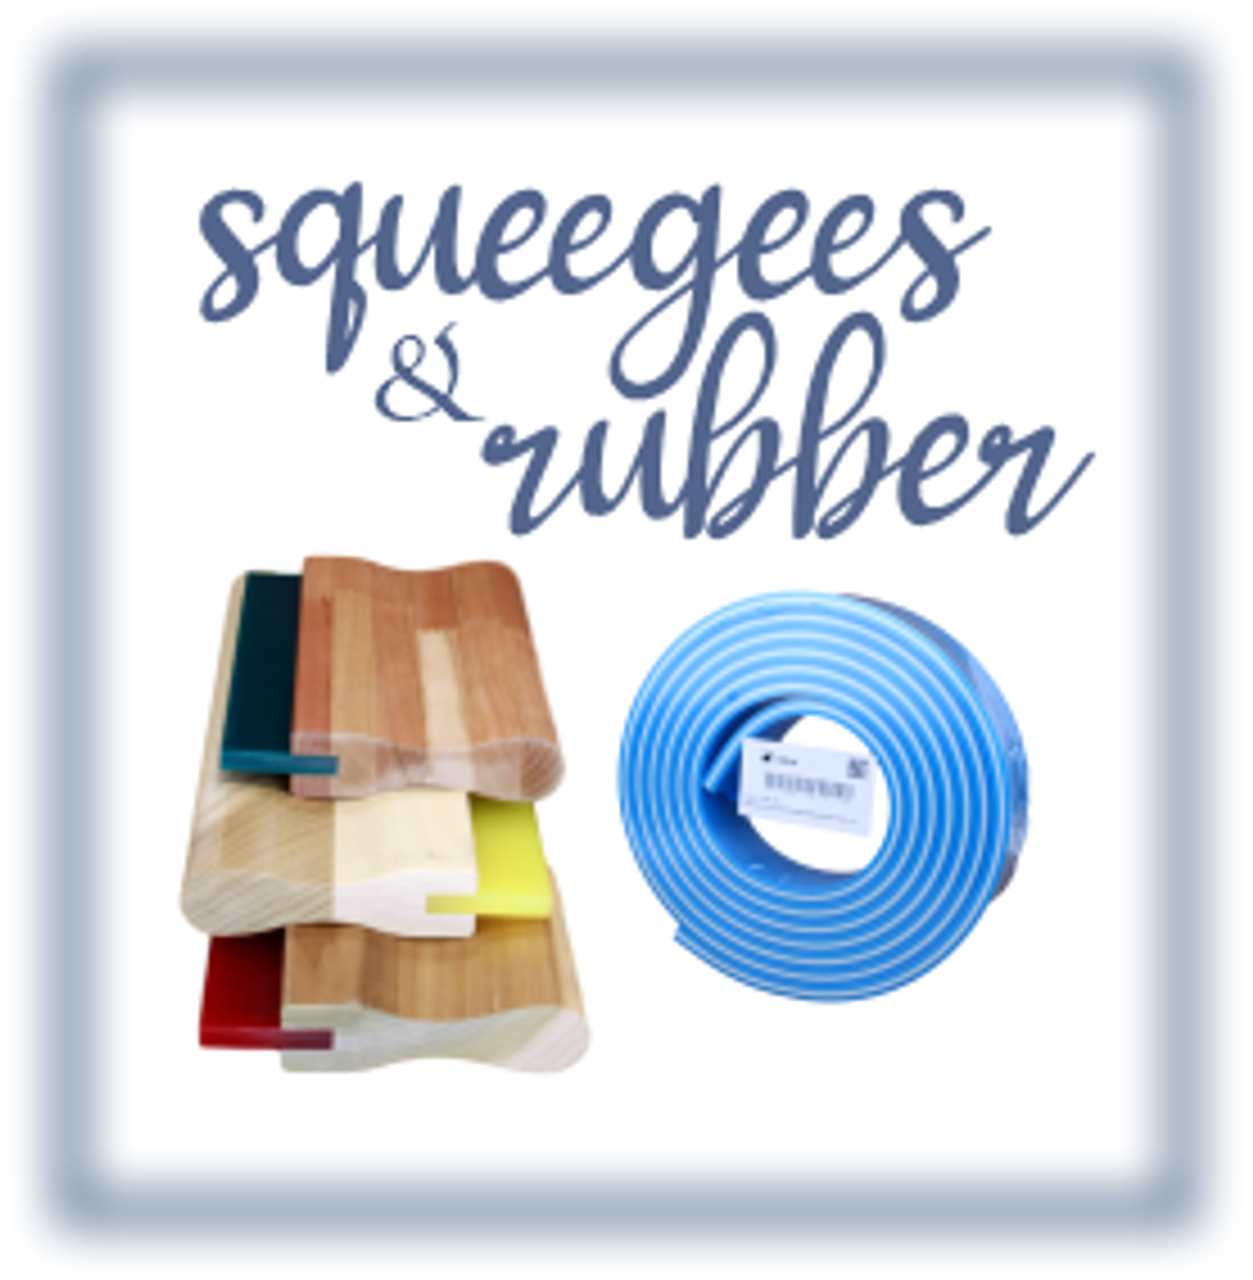 Squeegees/ Handles / Rubber / Clamps